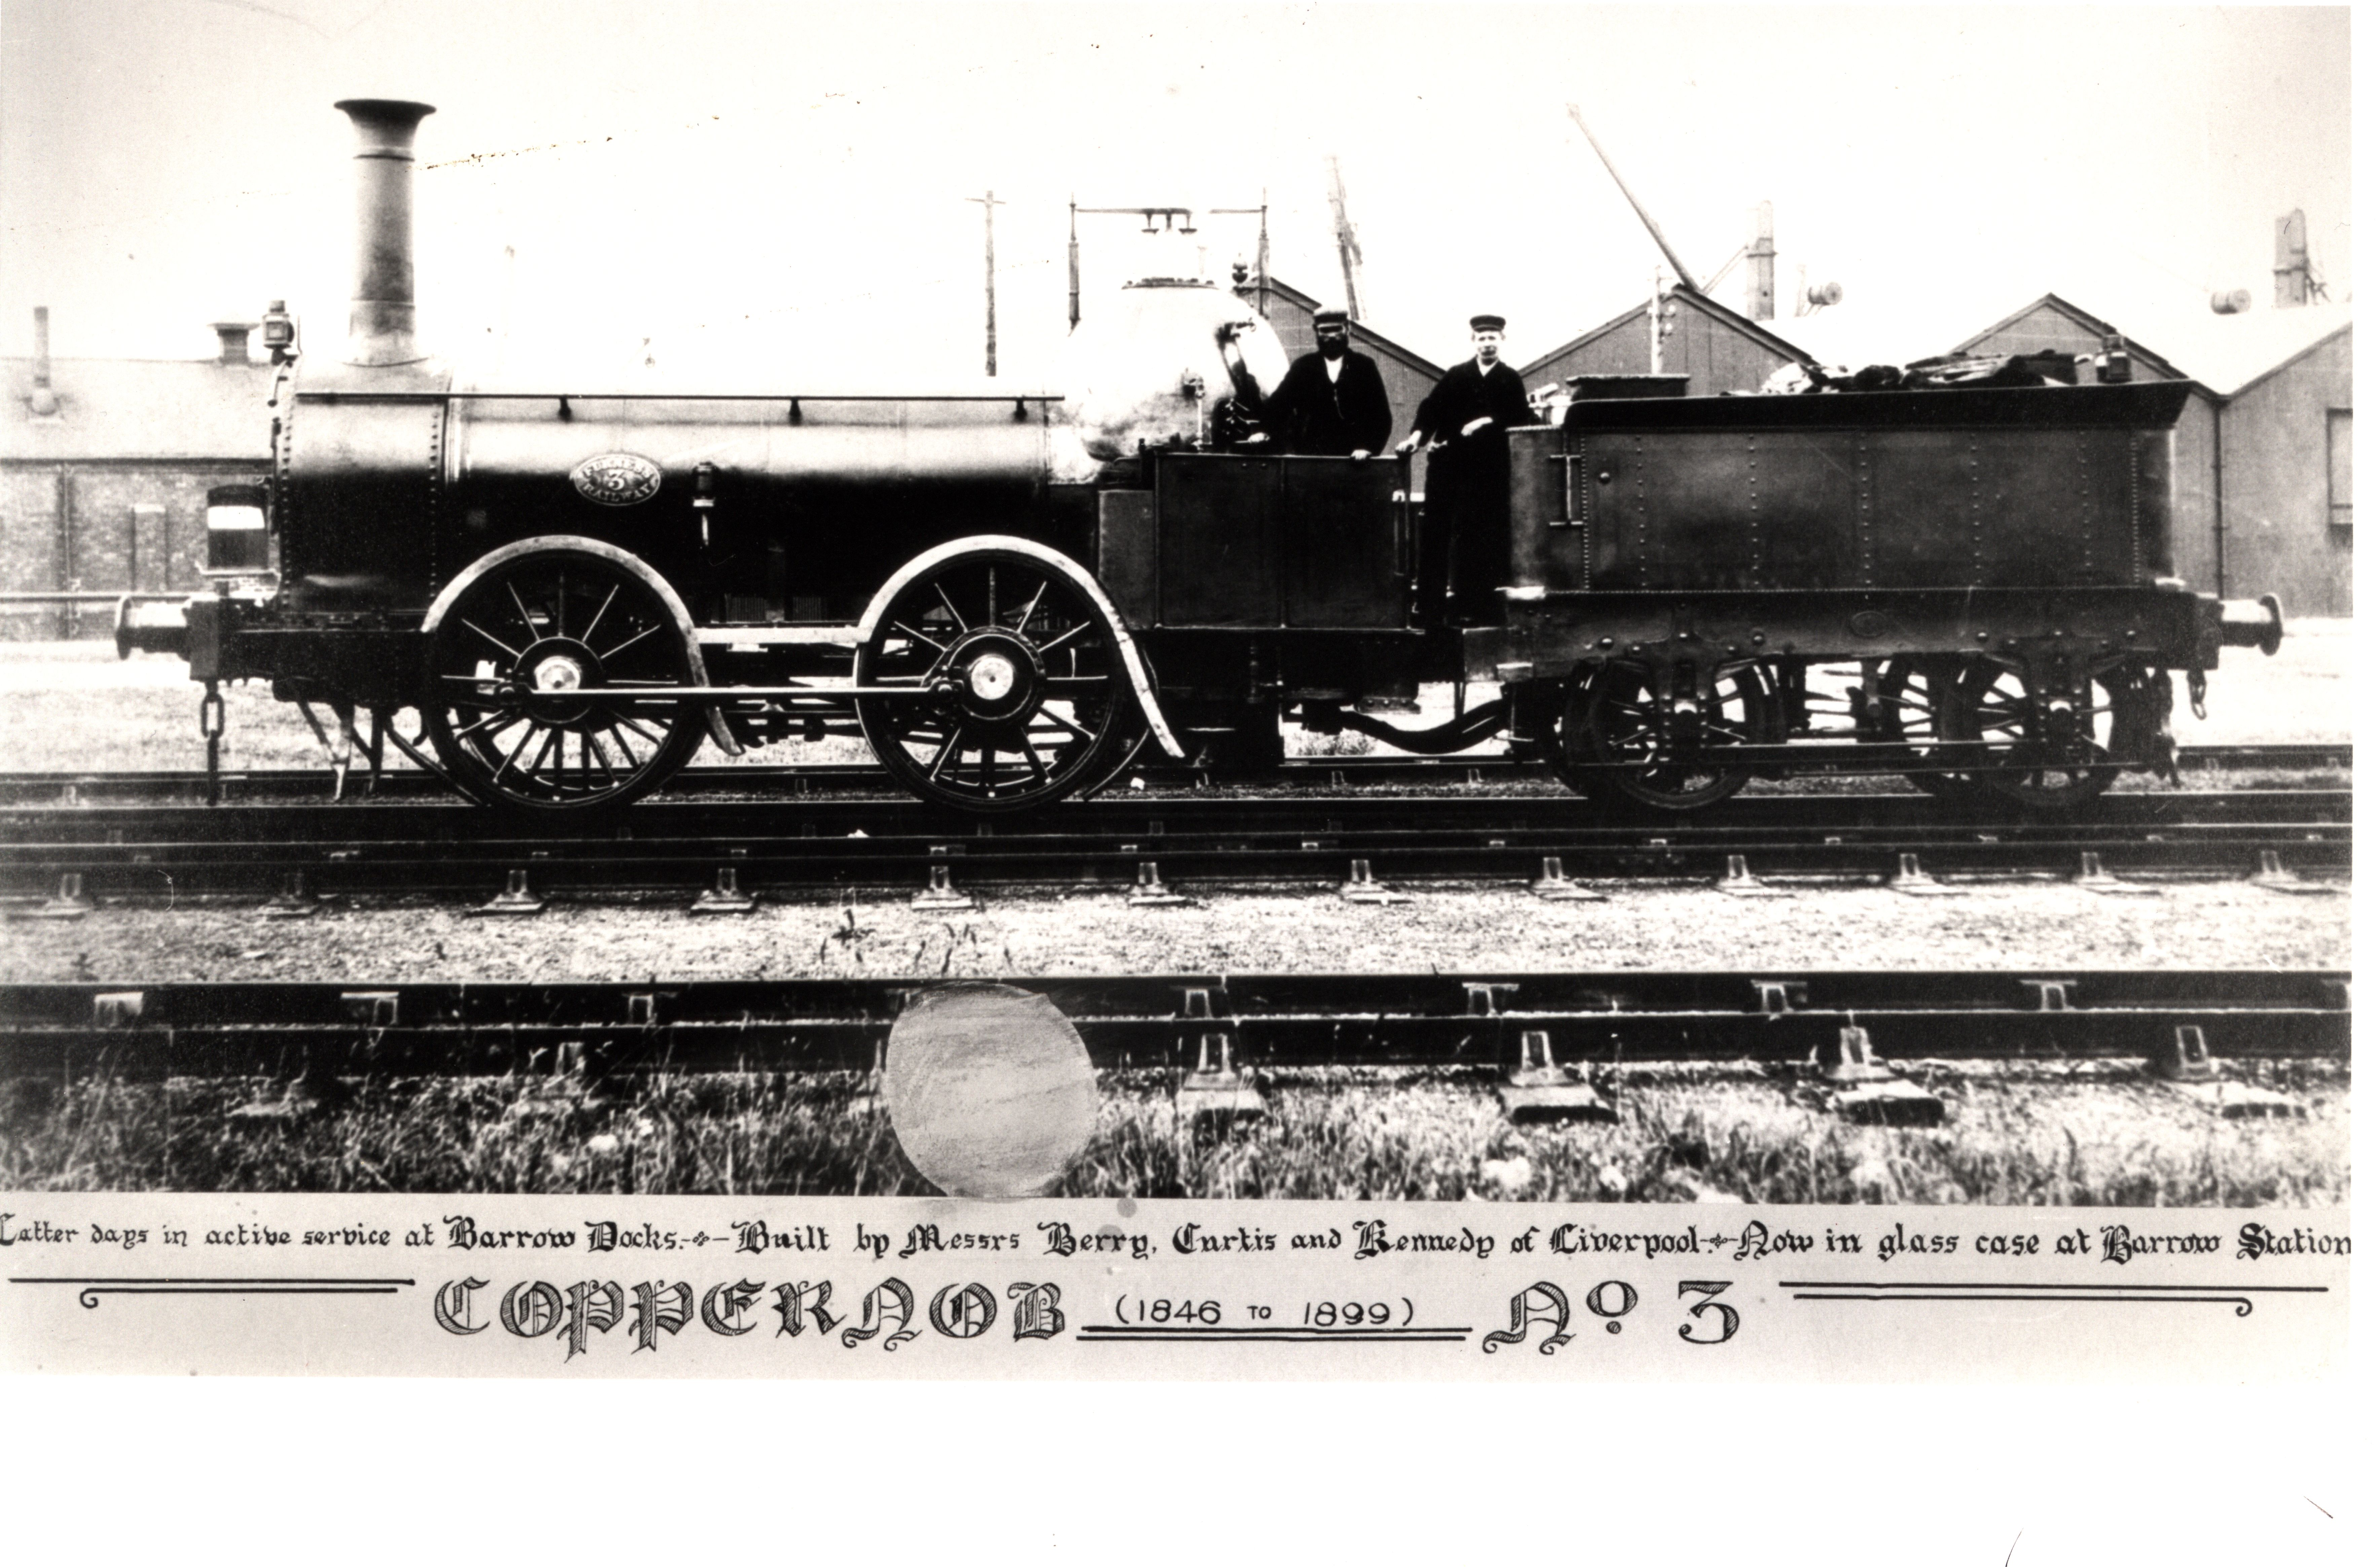 Furness Locomotive 'Coppernob', now in National Railway Museum